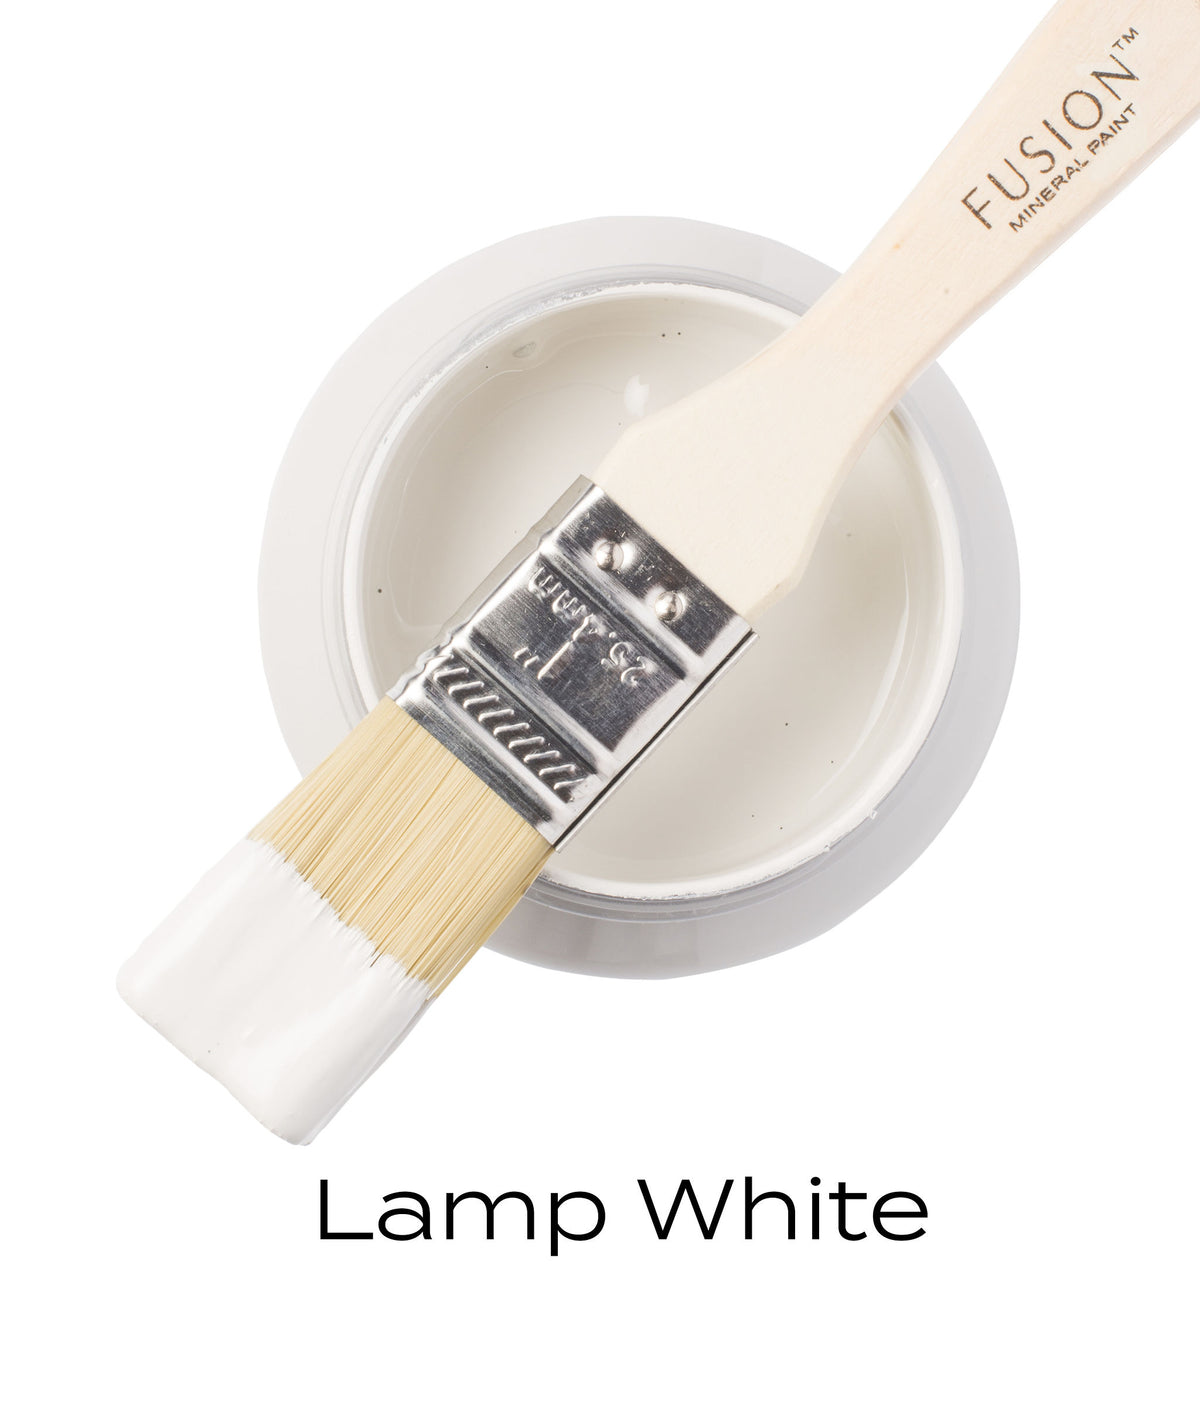 Lamp White-Fusion Mineral Paint